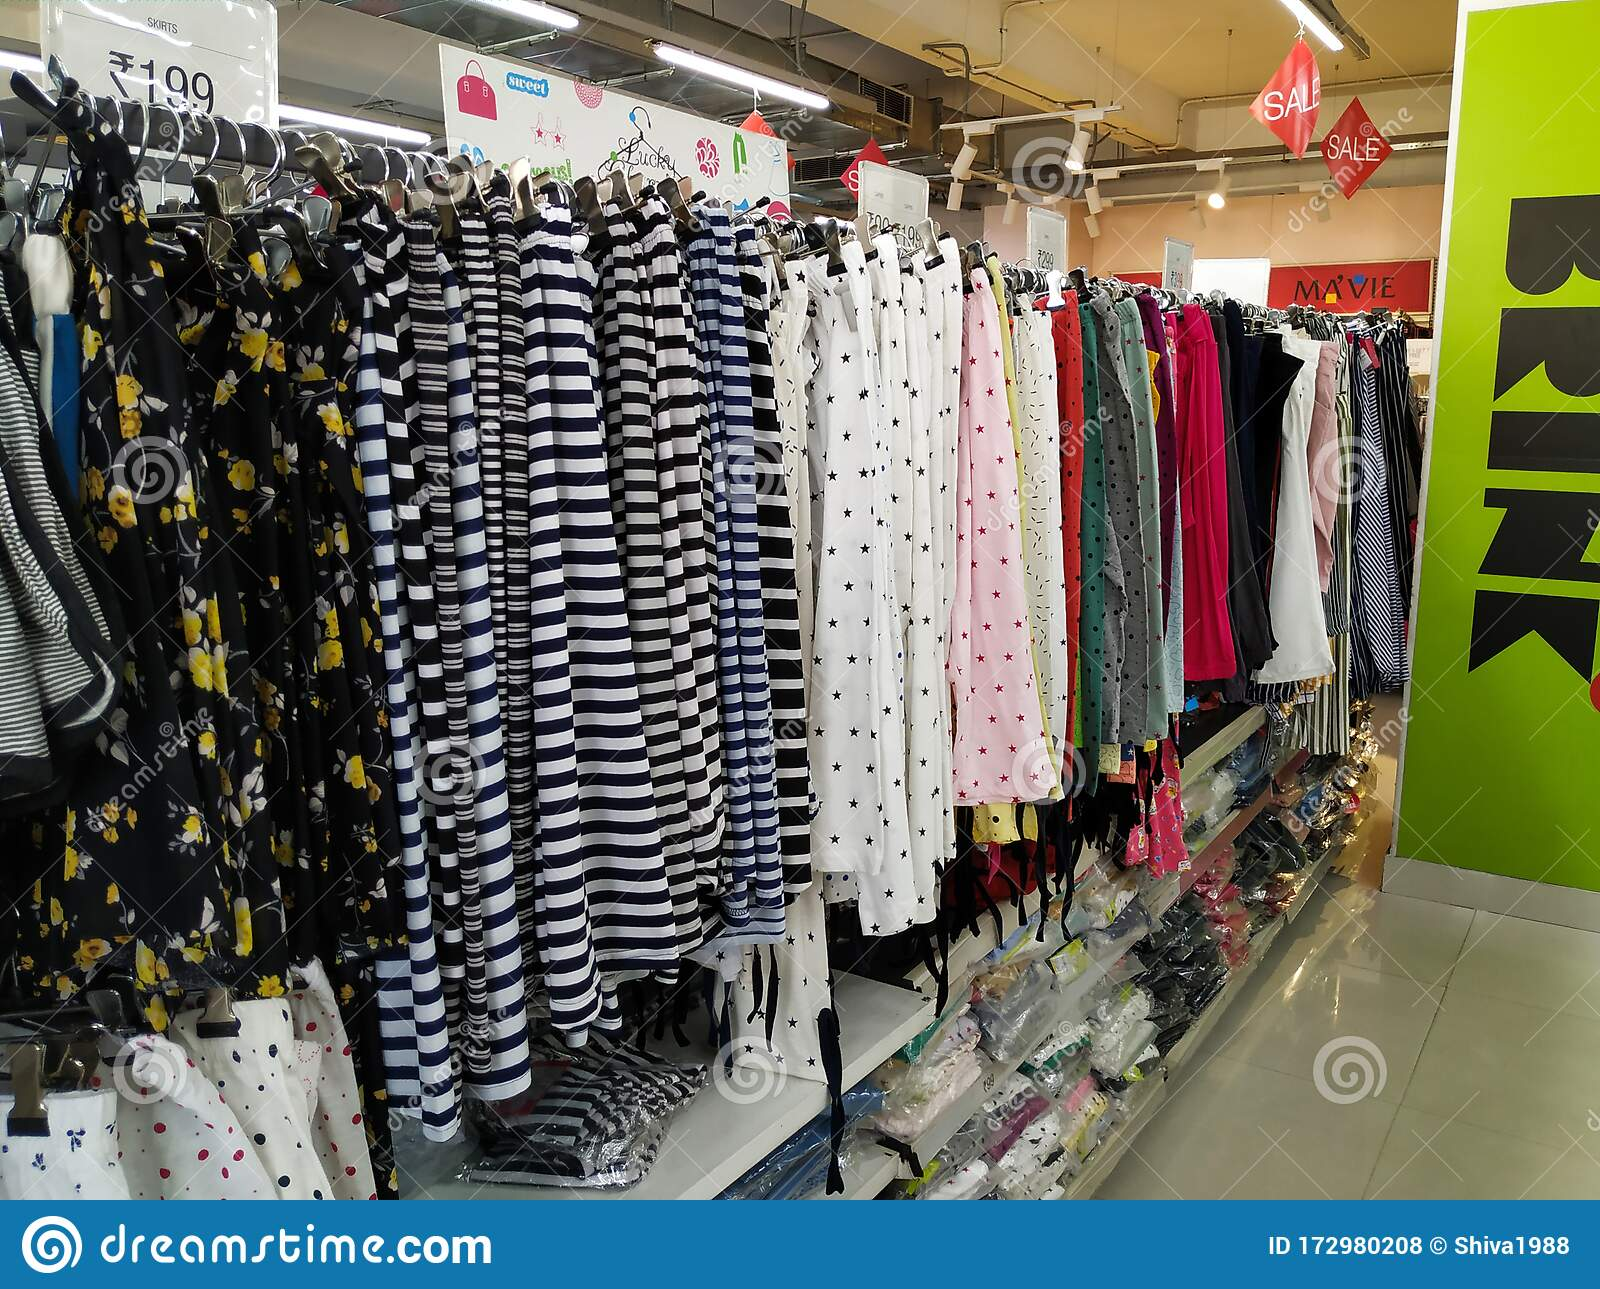 Ladies External Top Wear Dresses And Costumes Sales In A Store Or In Vishal Mall Interior Design Of A Textile Shop Editorial Stock Photo Image Of Design Cloth 172980208